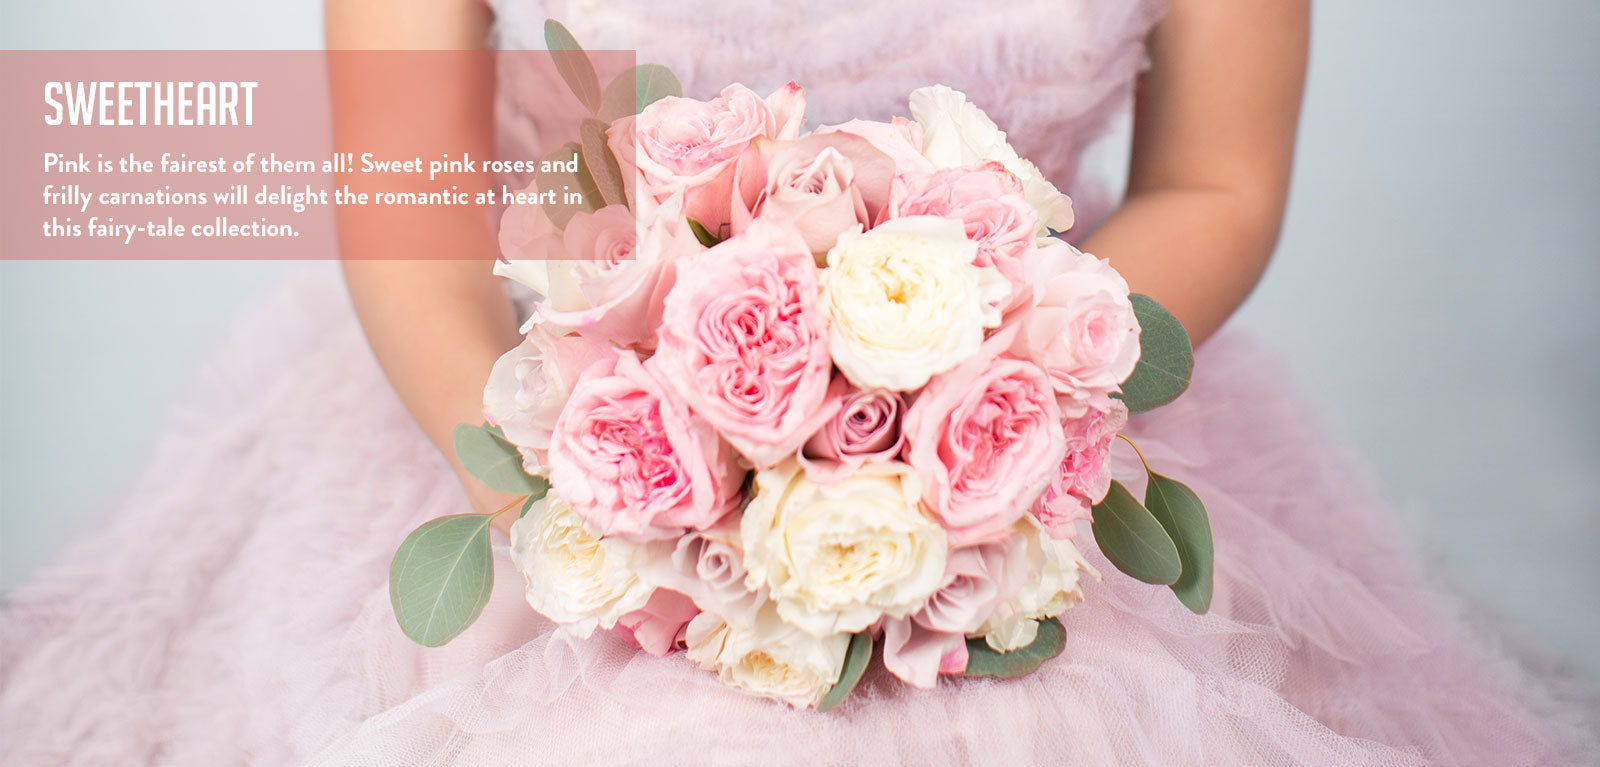 Sweetheart Collection - Sweet Pink Roses